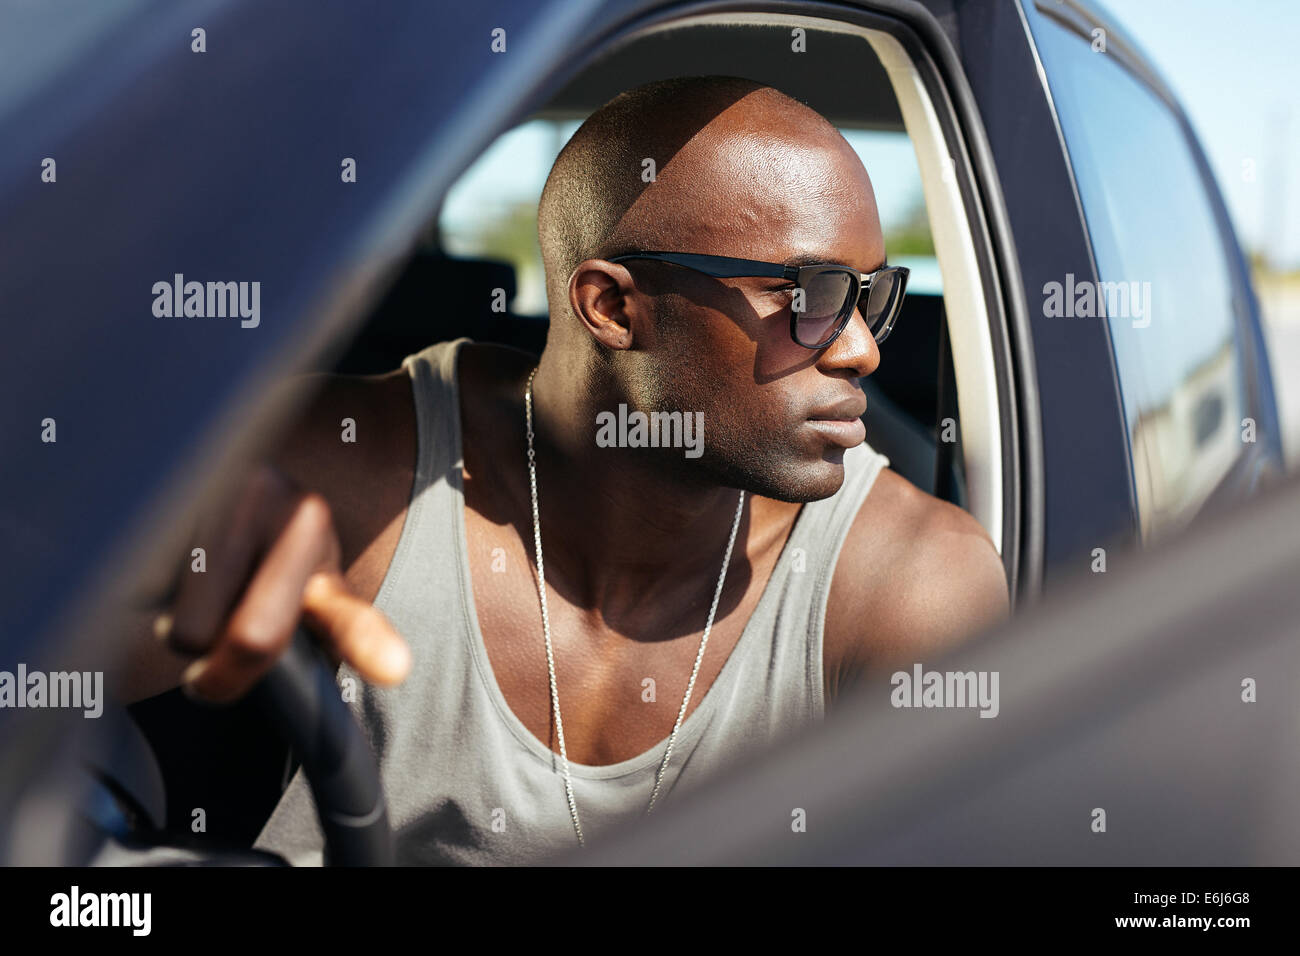 African male model in his car. Stylish young man with hands on steering wheel. Muscular young wearing sunglasses - Stock Image